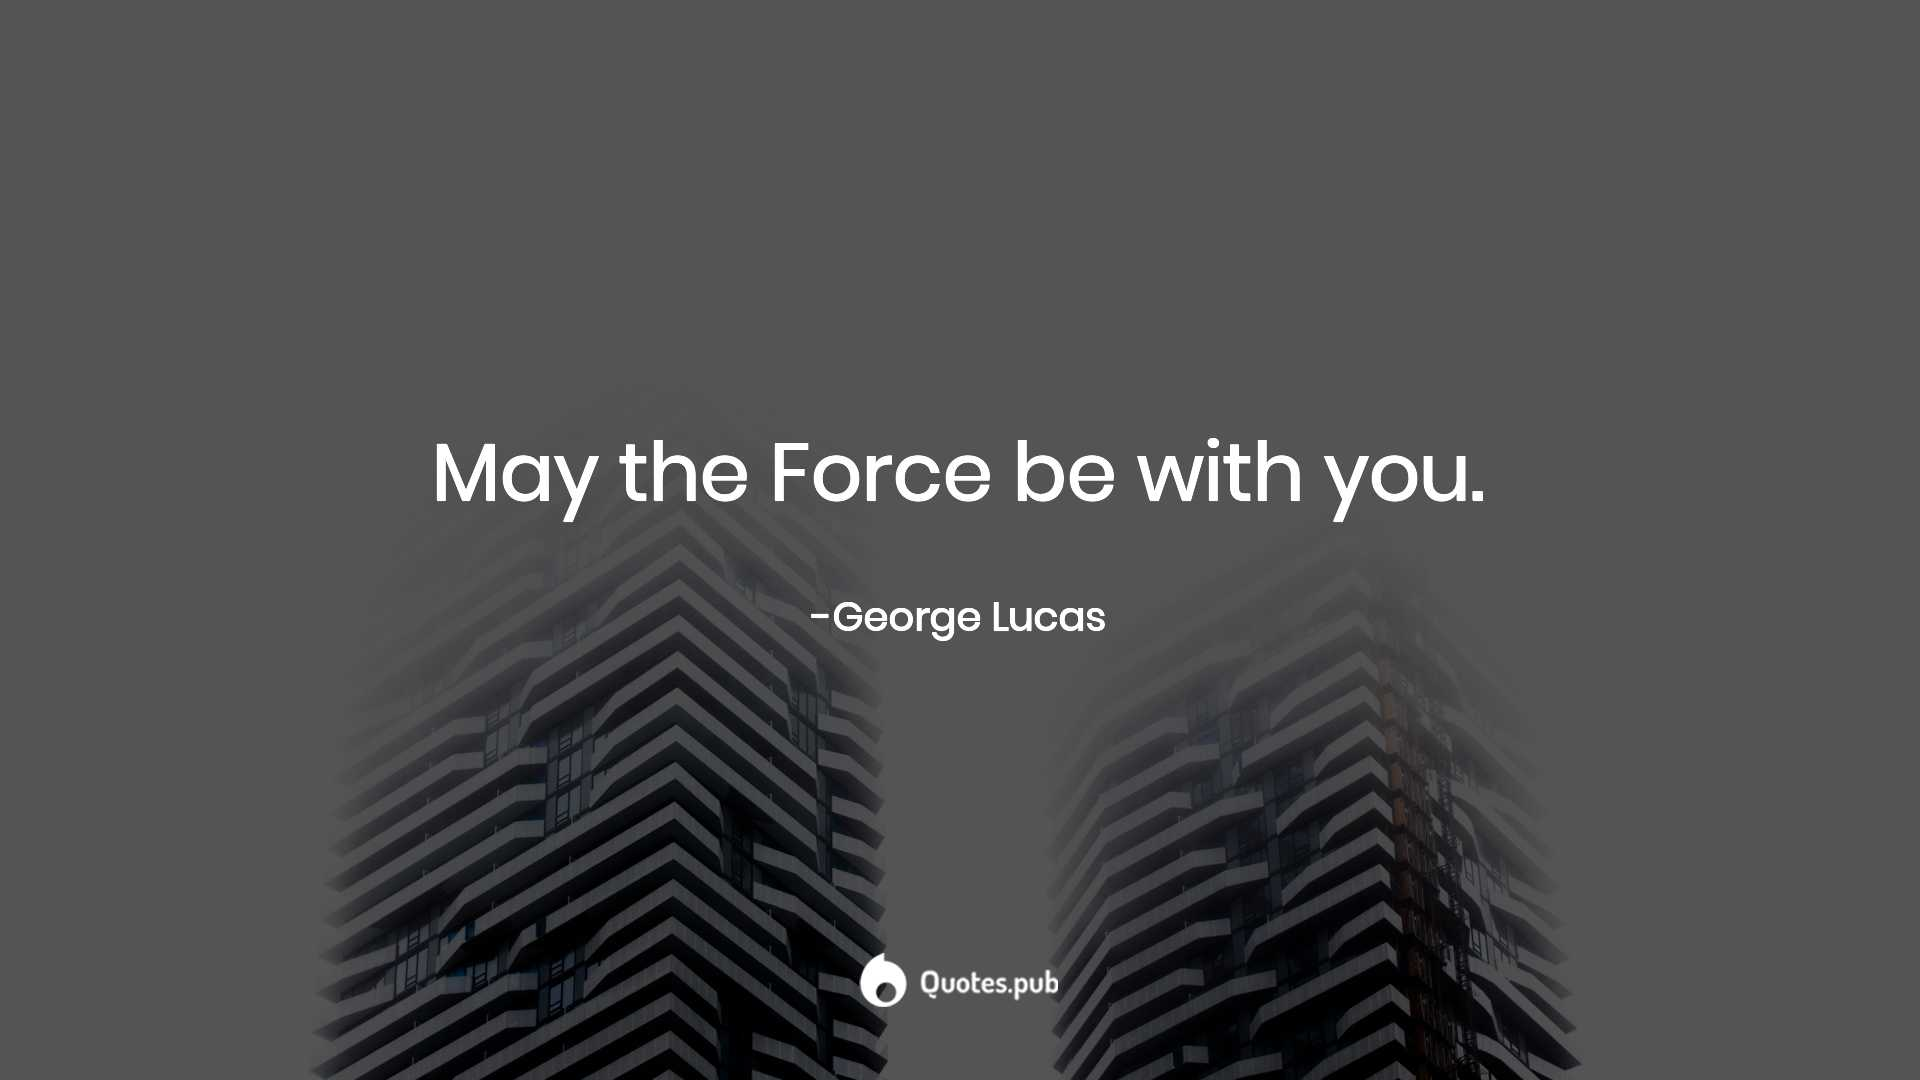 5 Star Wars Episode Iv A New Hope Quotes Sayings With